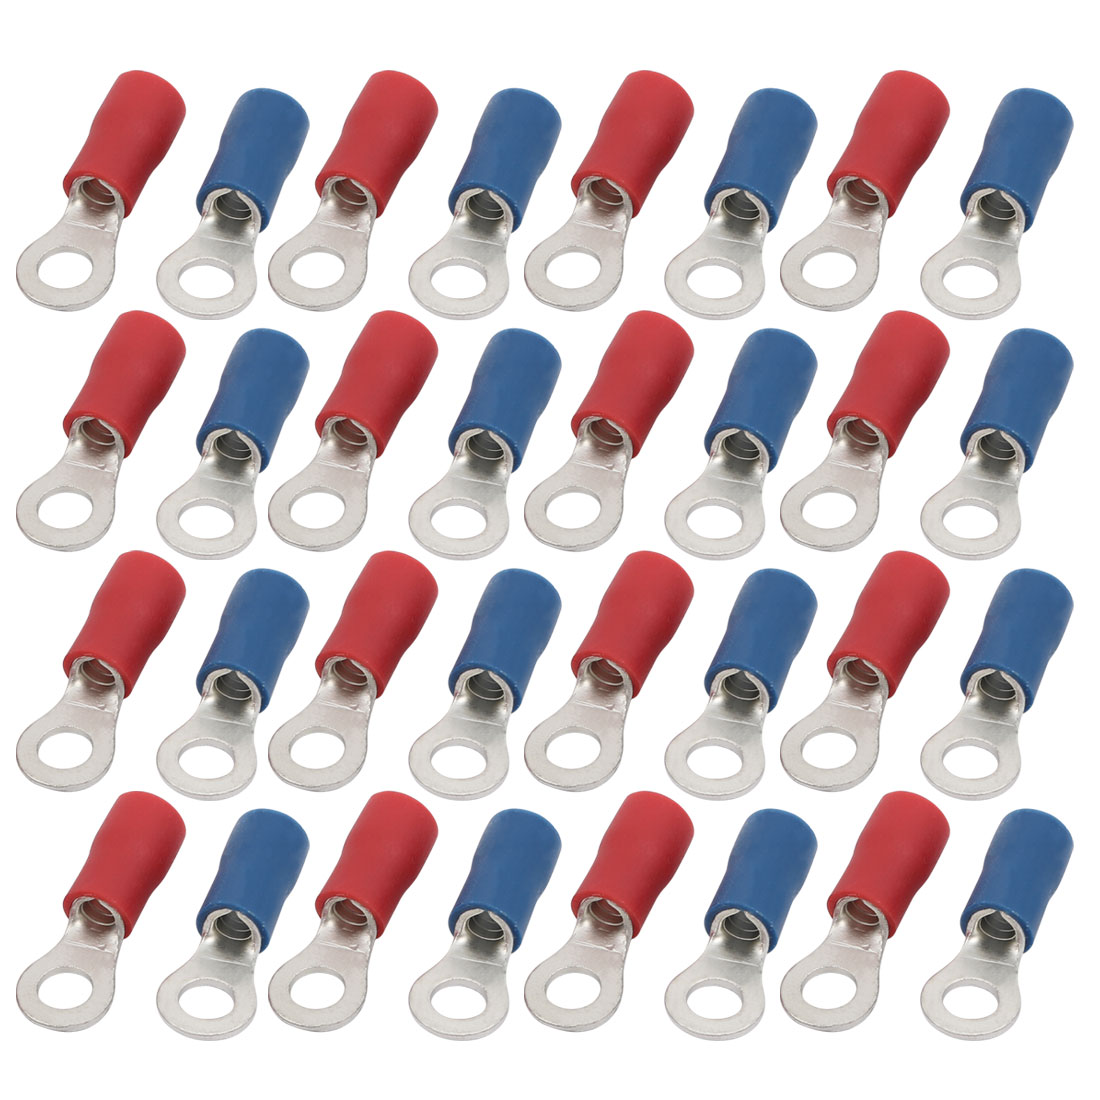 40pcs RV5.5-5 Pre Insulated Ring Crimp Terminal Red Blue for AWG 12-10 Wire